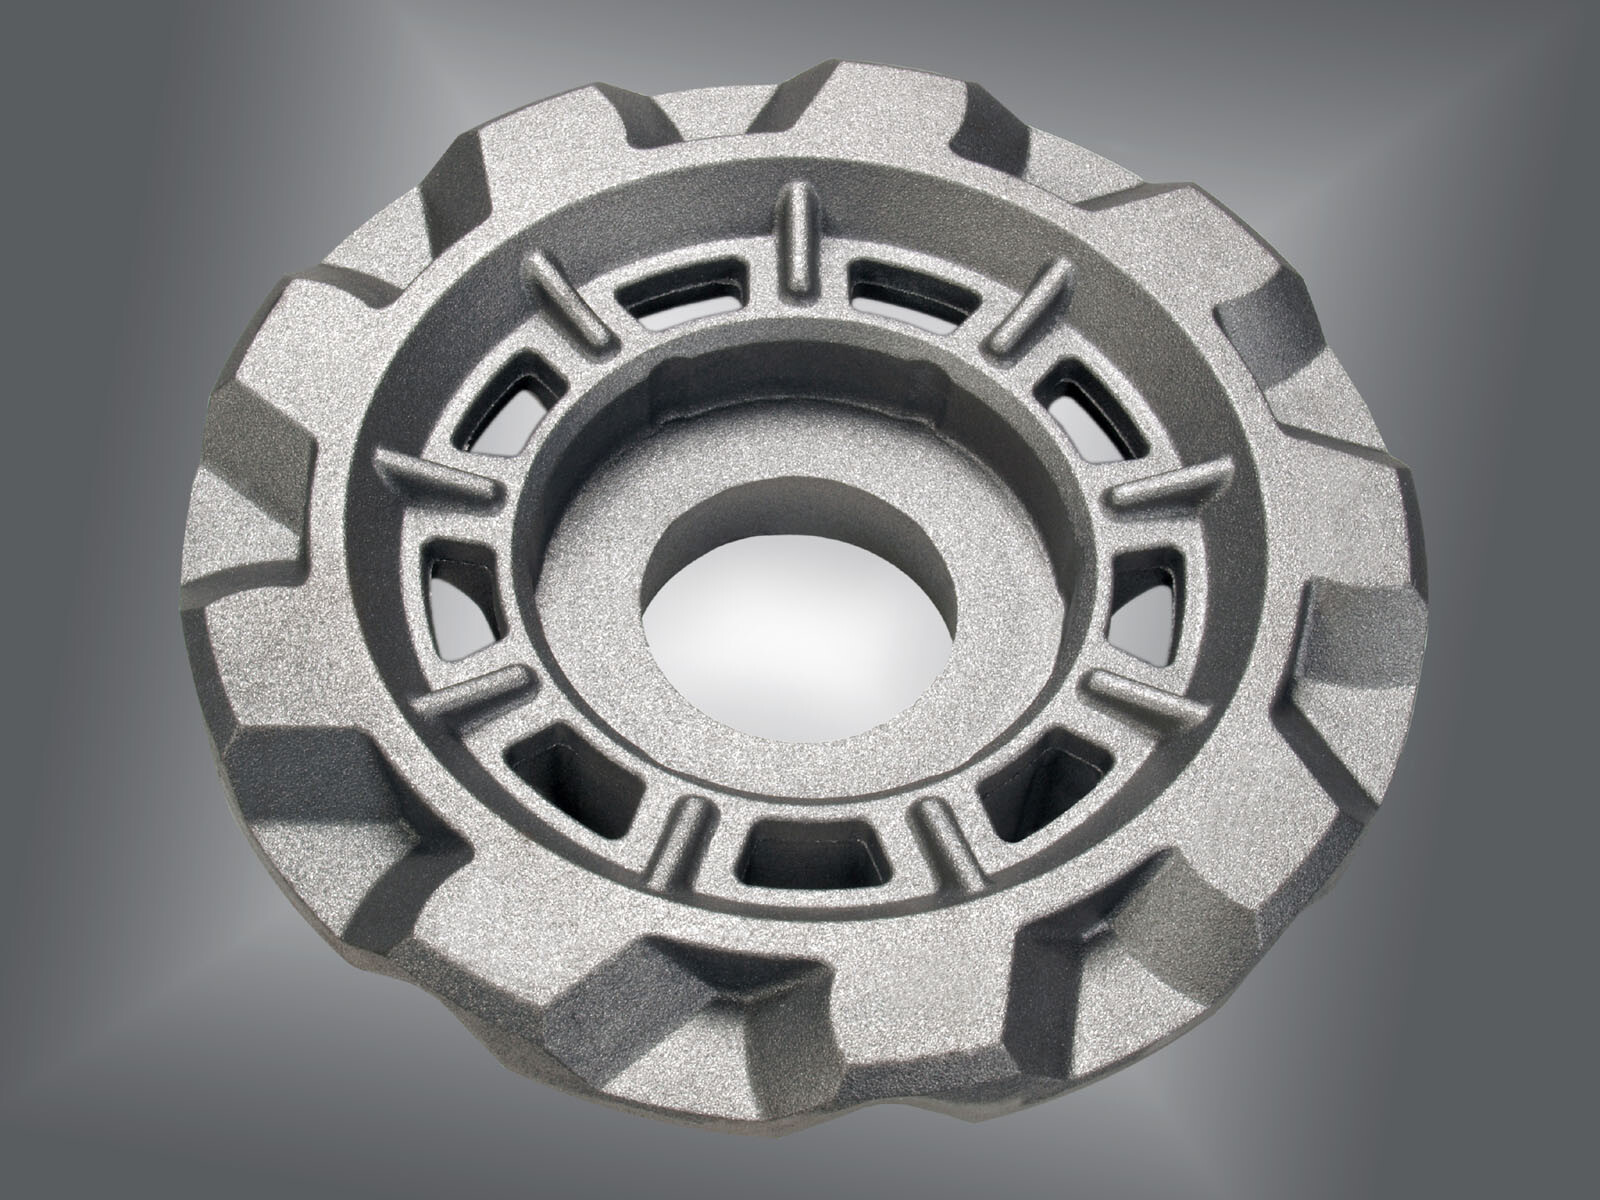 traction wheel for drivetrain application of a handling robot made of ductile cast iron with 150 kg part weight.